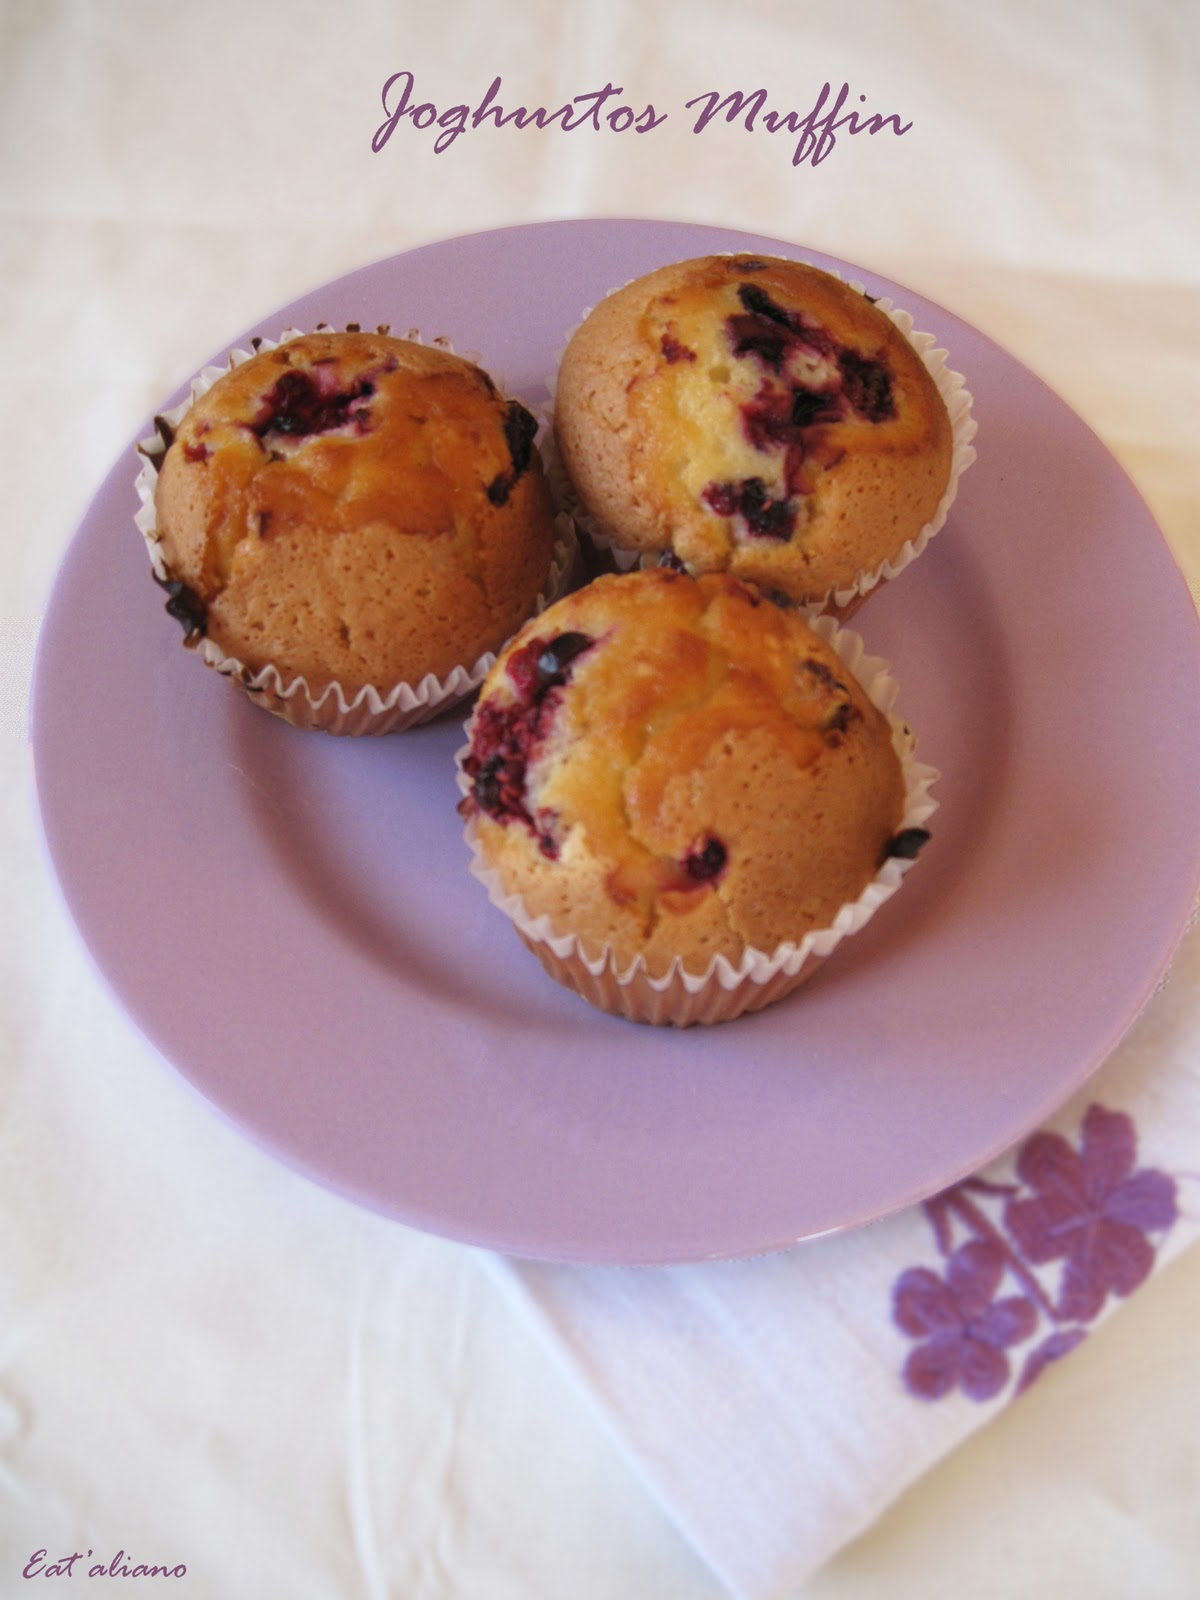 how to eat a muffin correctly